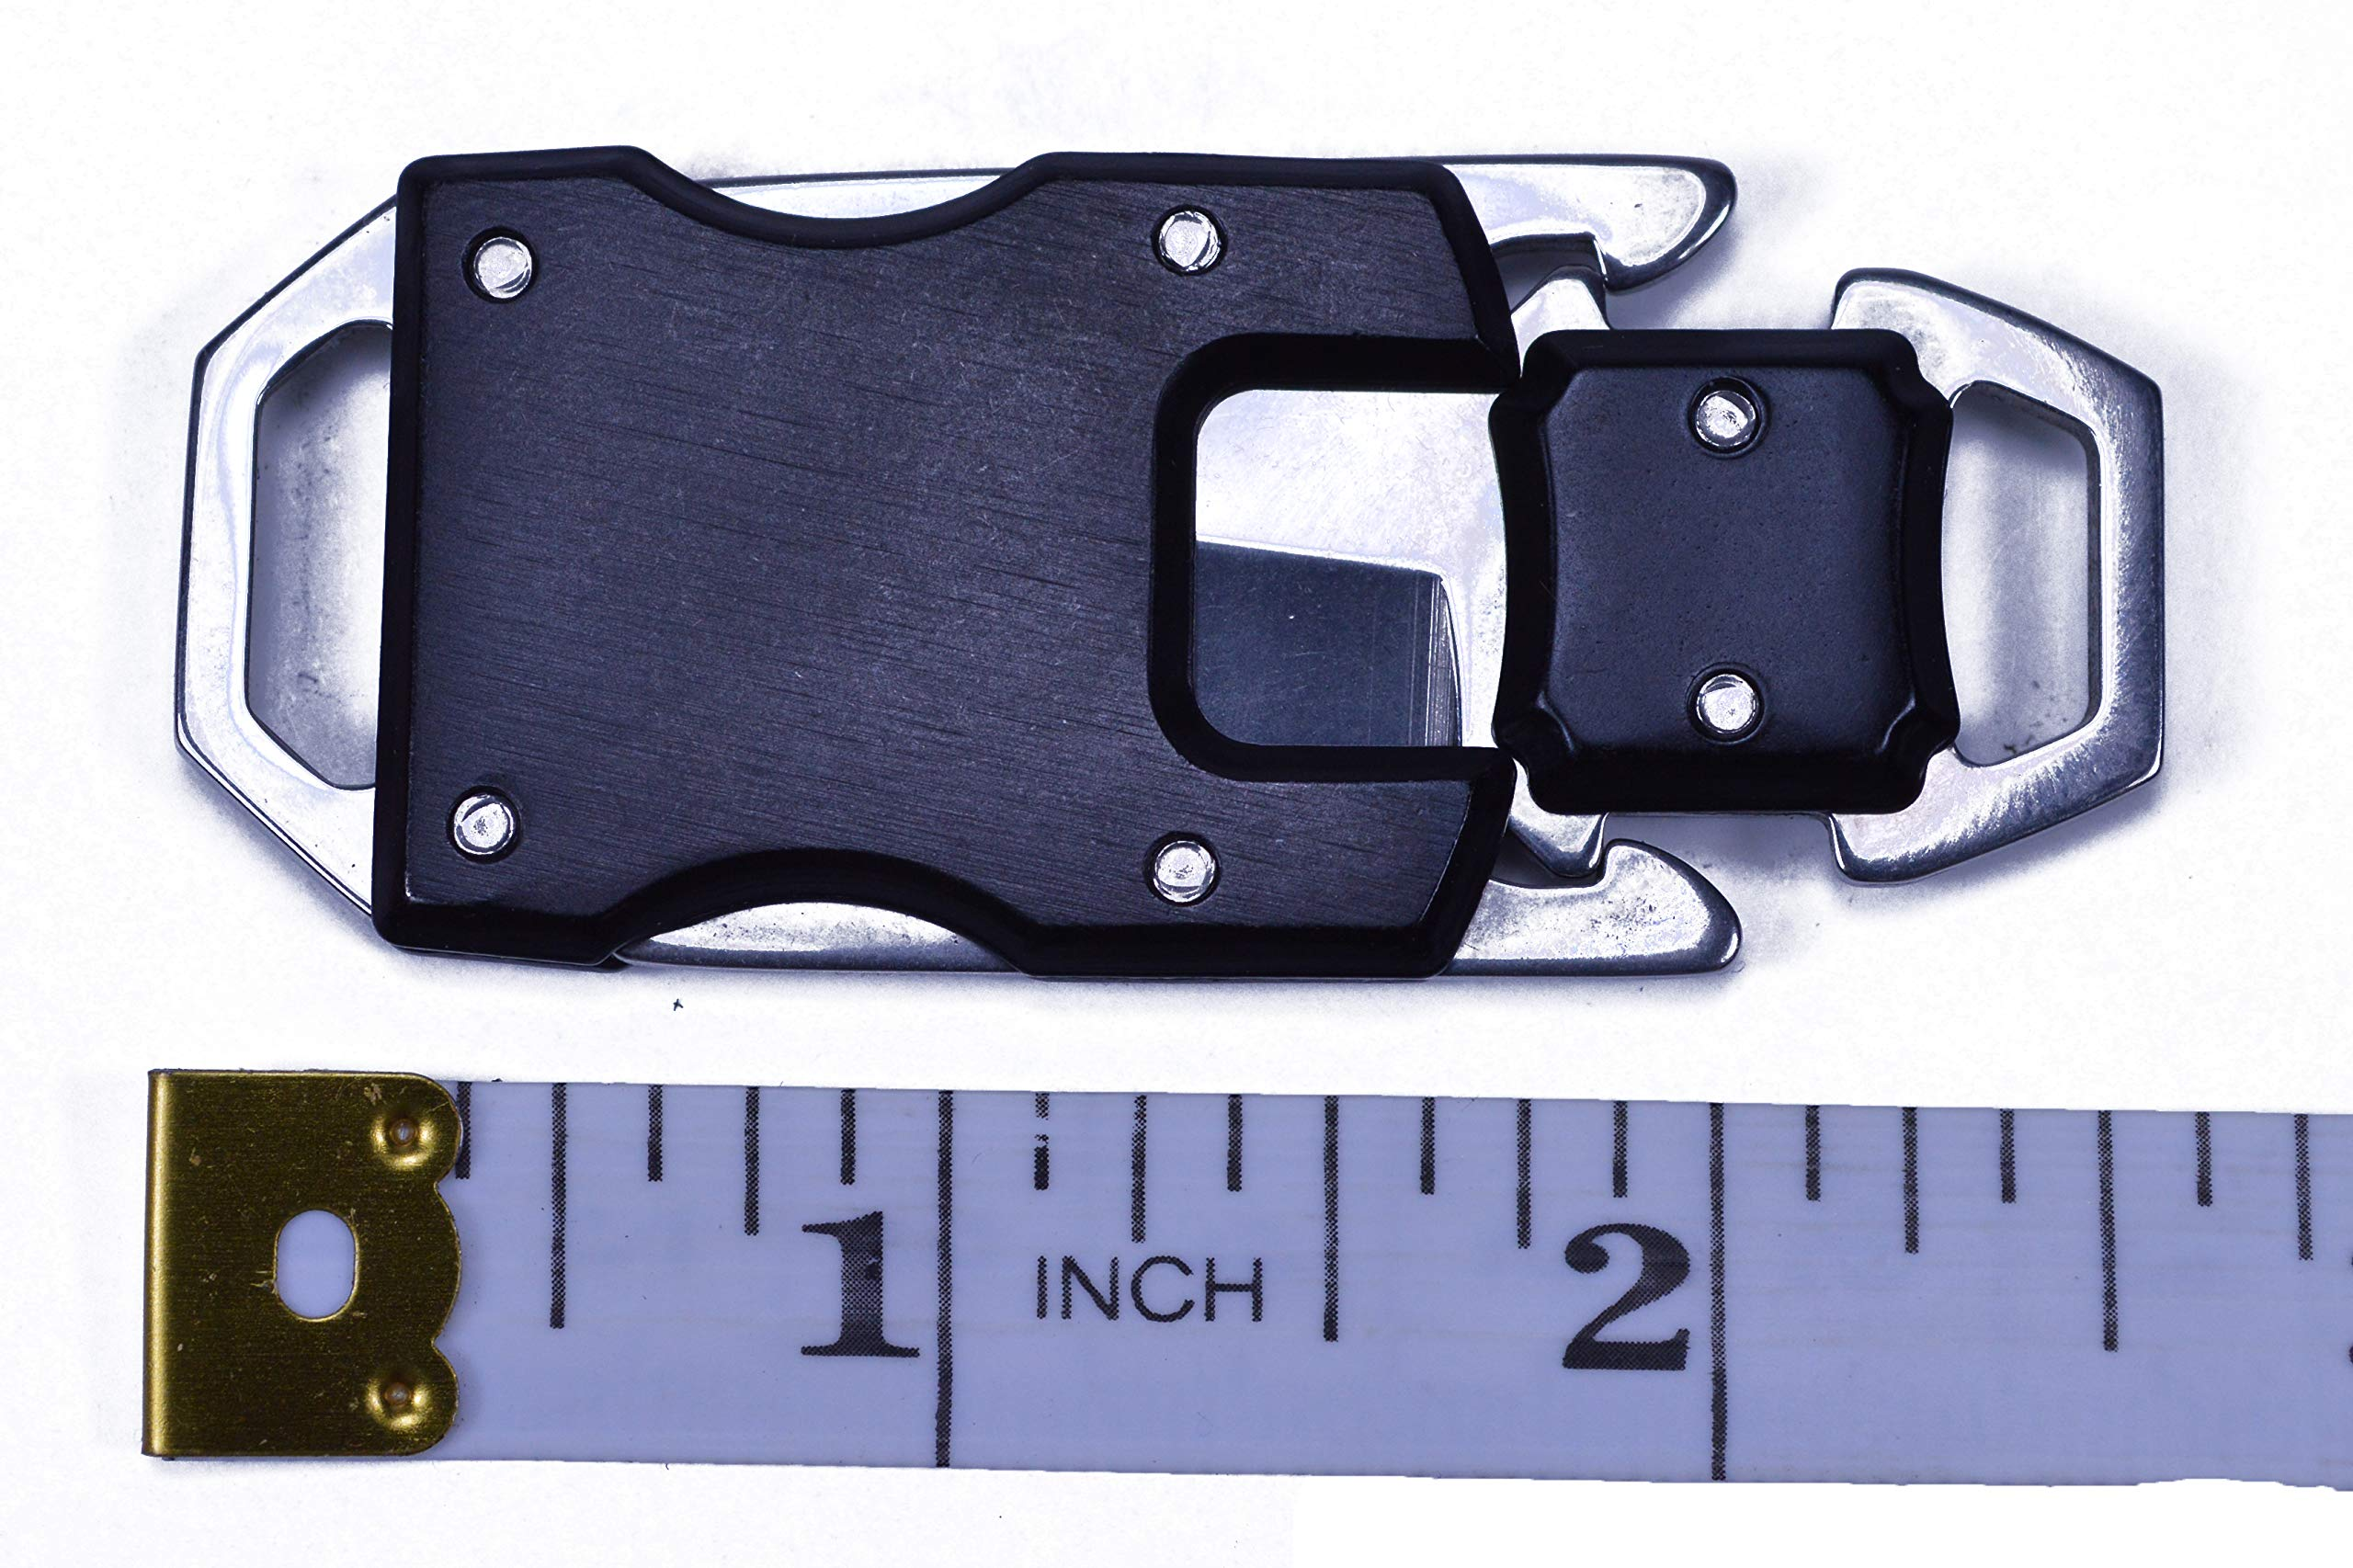 3 Pack - Knife Buckles with Safety Latches - Great for Paracord Bracelets or Keyfobs by Bored Paracord (Image #5)